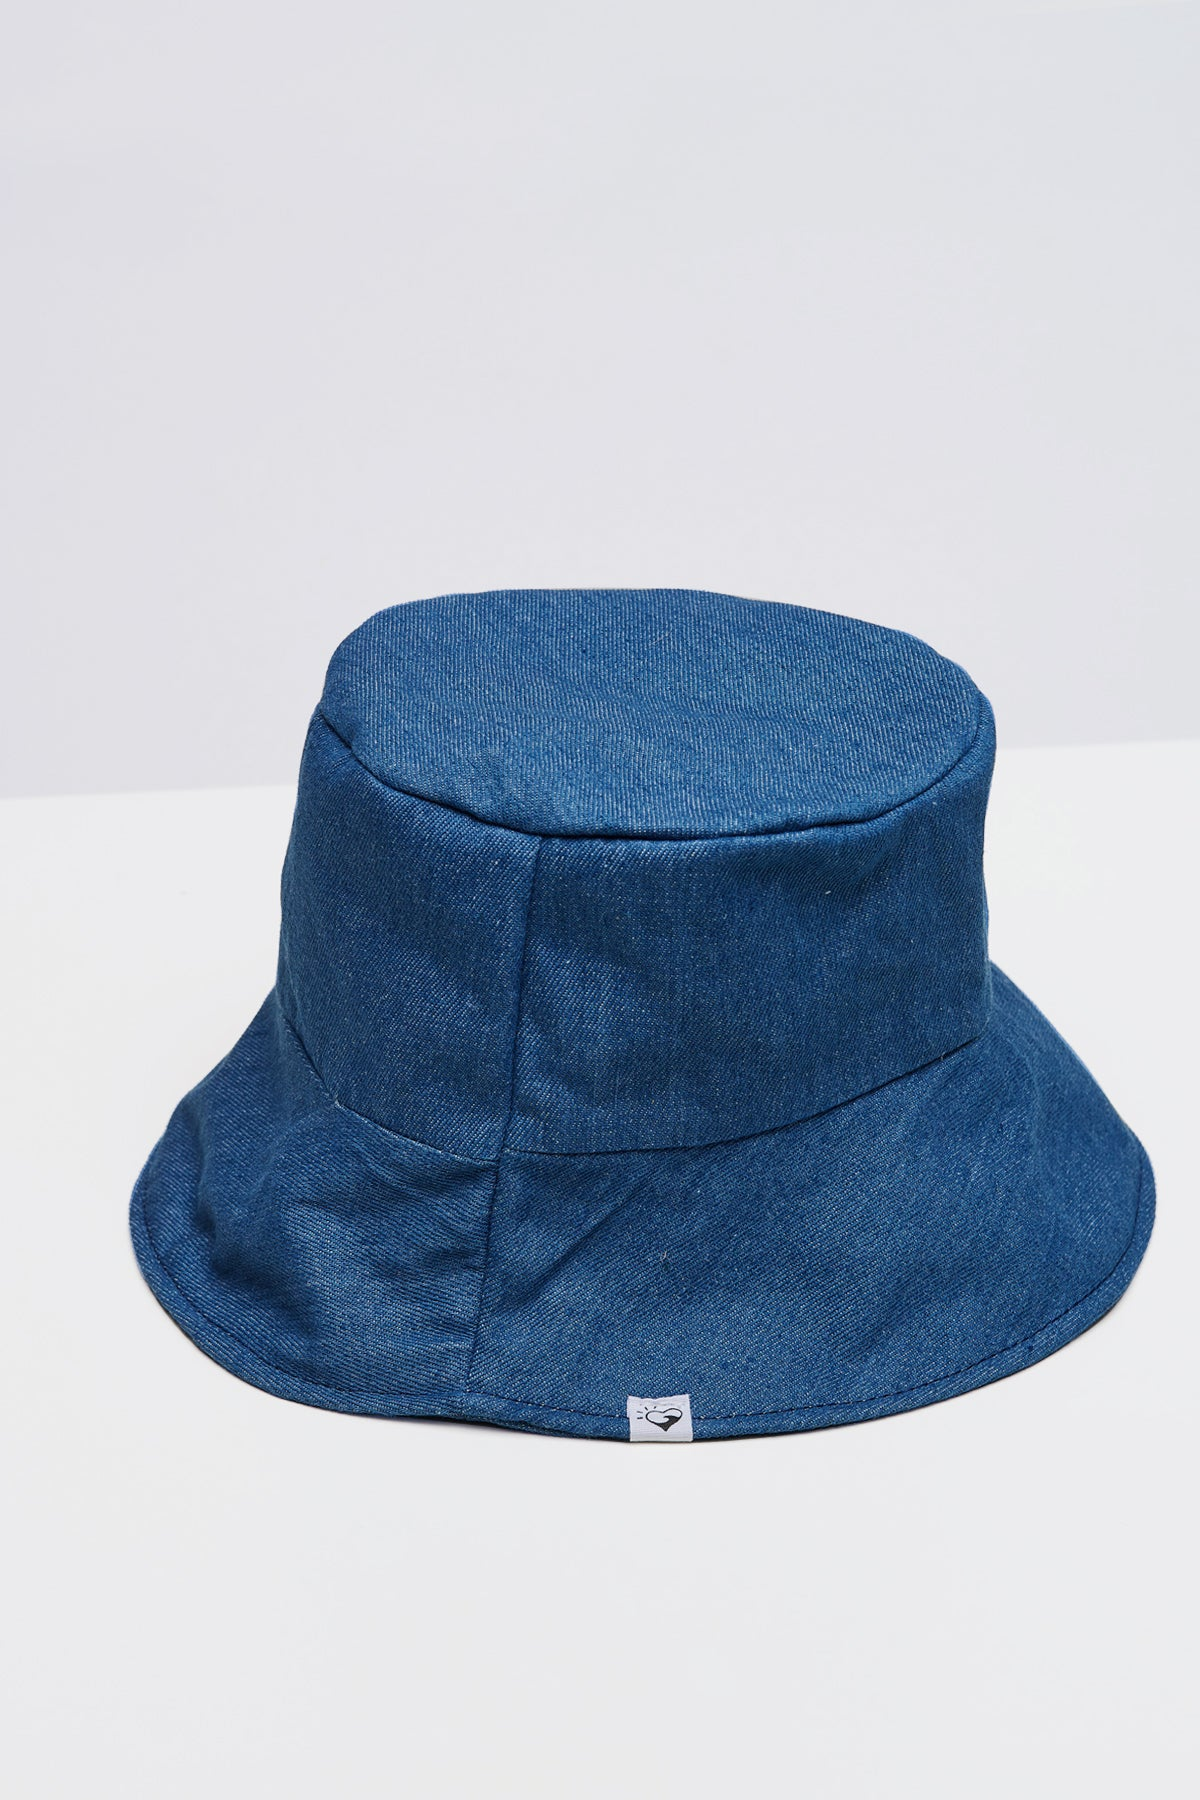 Denim Baby Bucket hat